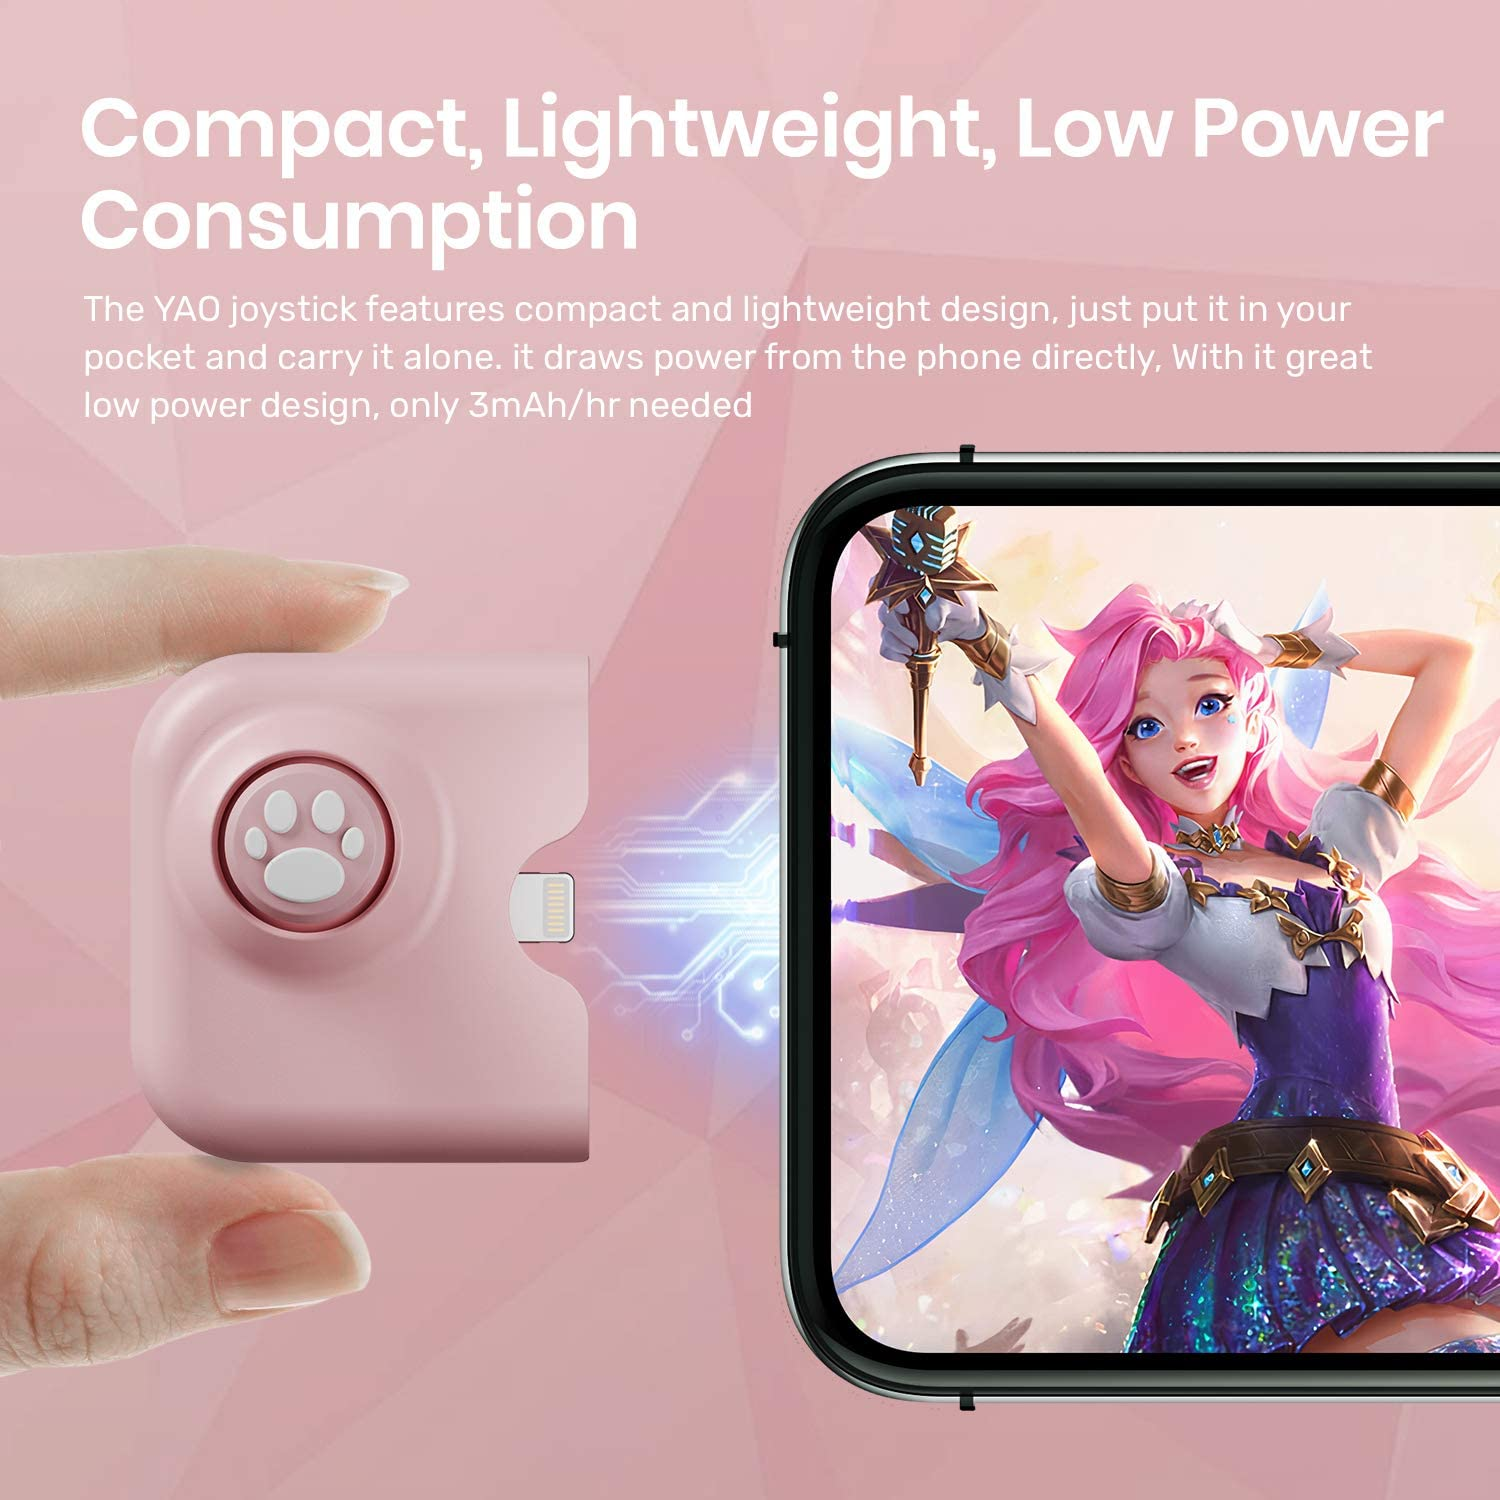 IFYOO YAO L1 Pro Mobile Game Controller Joystick for iPhone (iOS 13.4 or Later), Gaming Gamepad for PUBGG Mobile, Call of Duty Mobile(CODM), Wild Rift, Genshin Impact, with 2 pcs Finger Sleeves - Pink